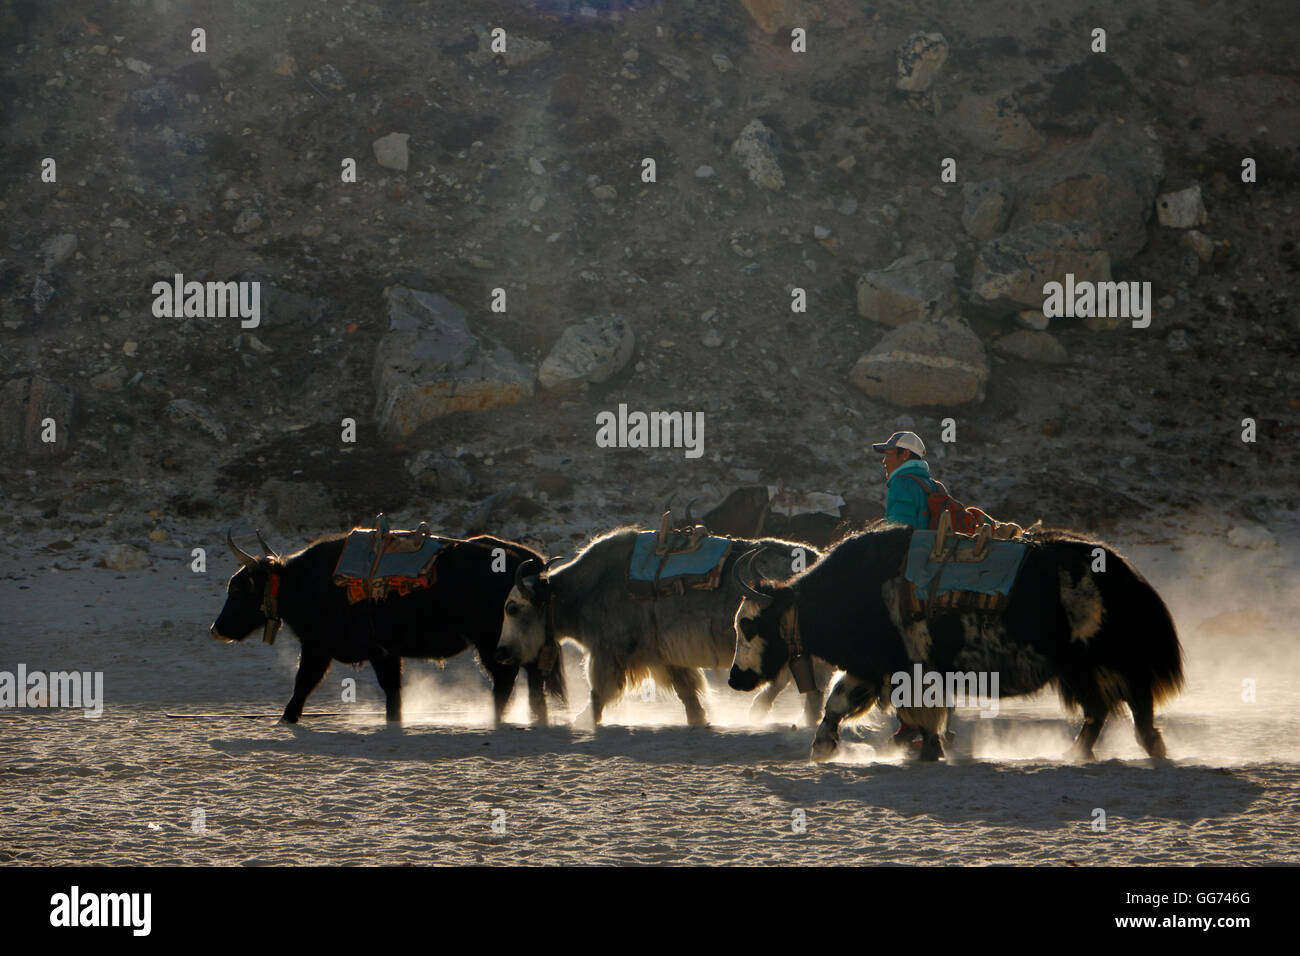 Yaks in Late afternoon  at Gorak Shep - Stock Image